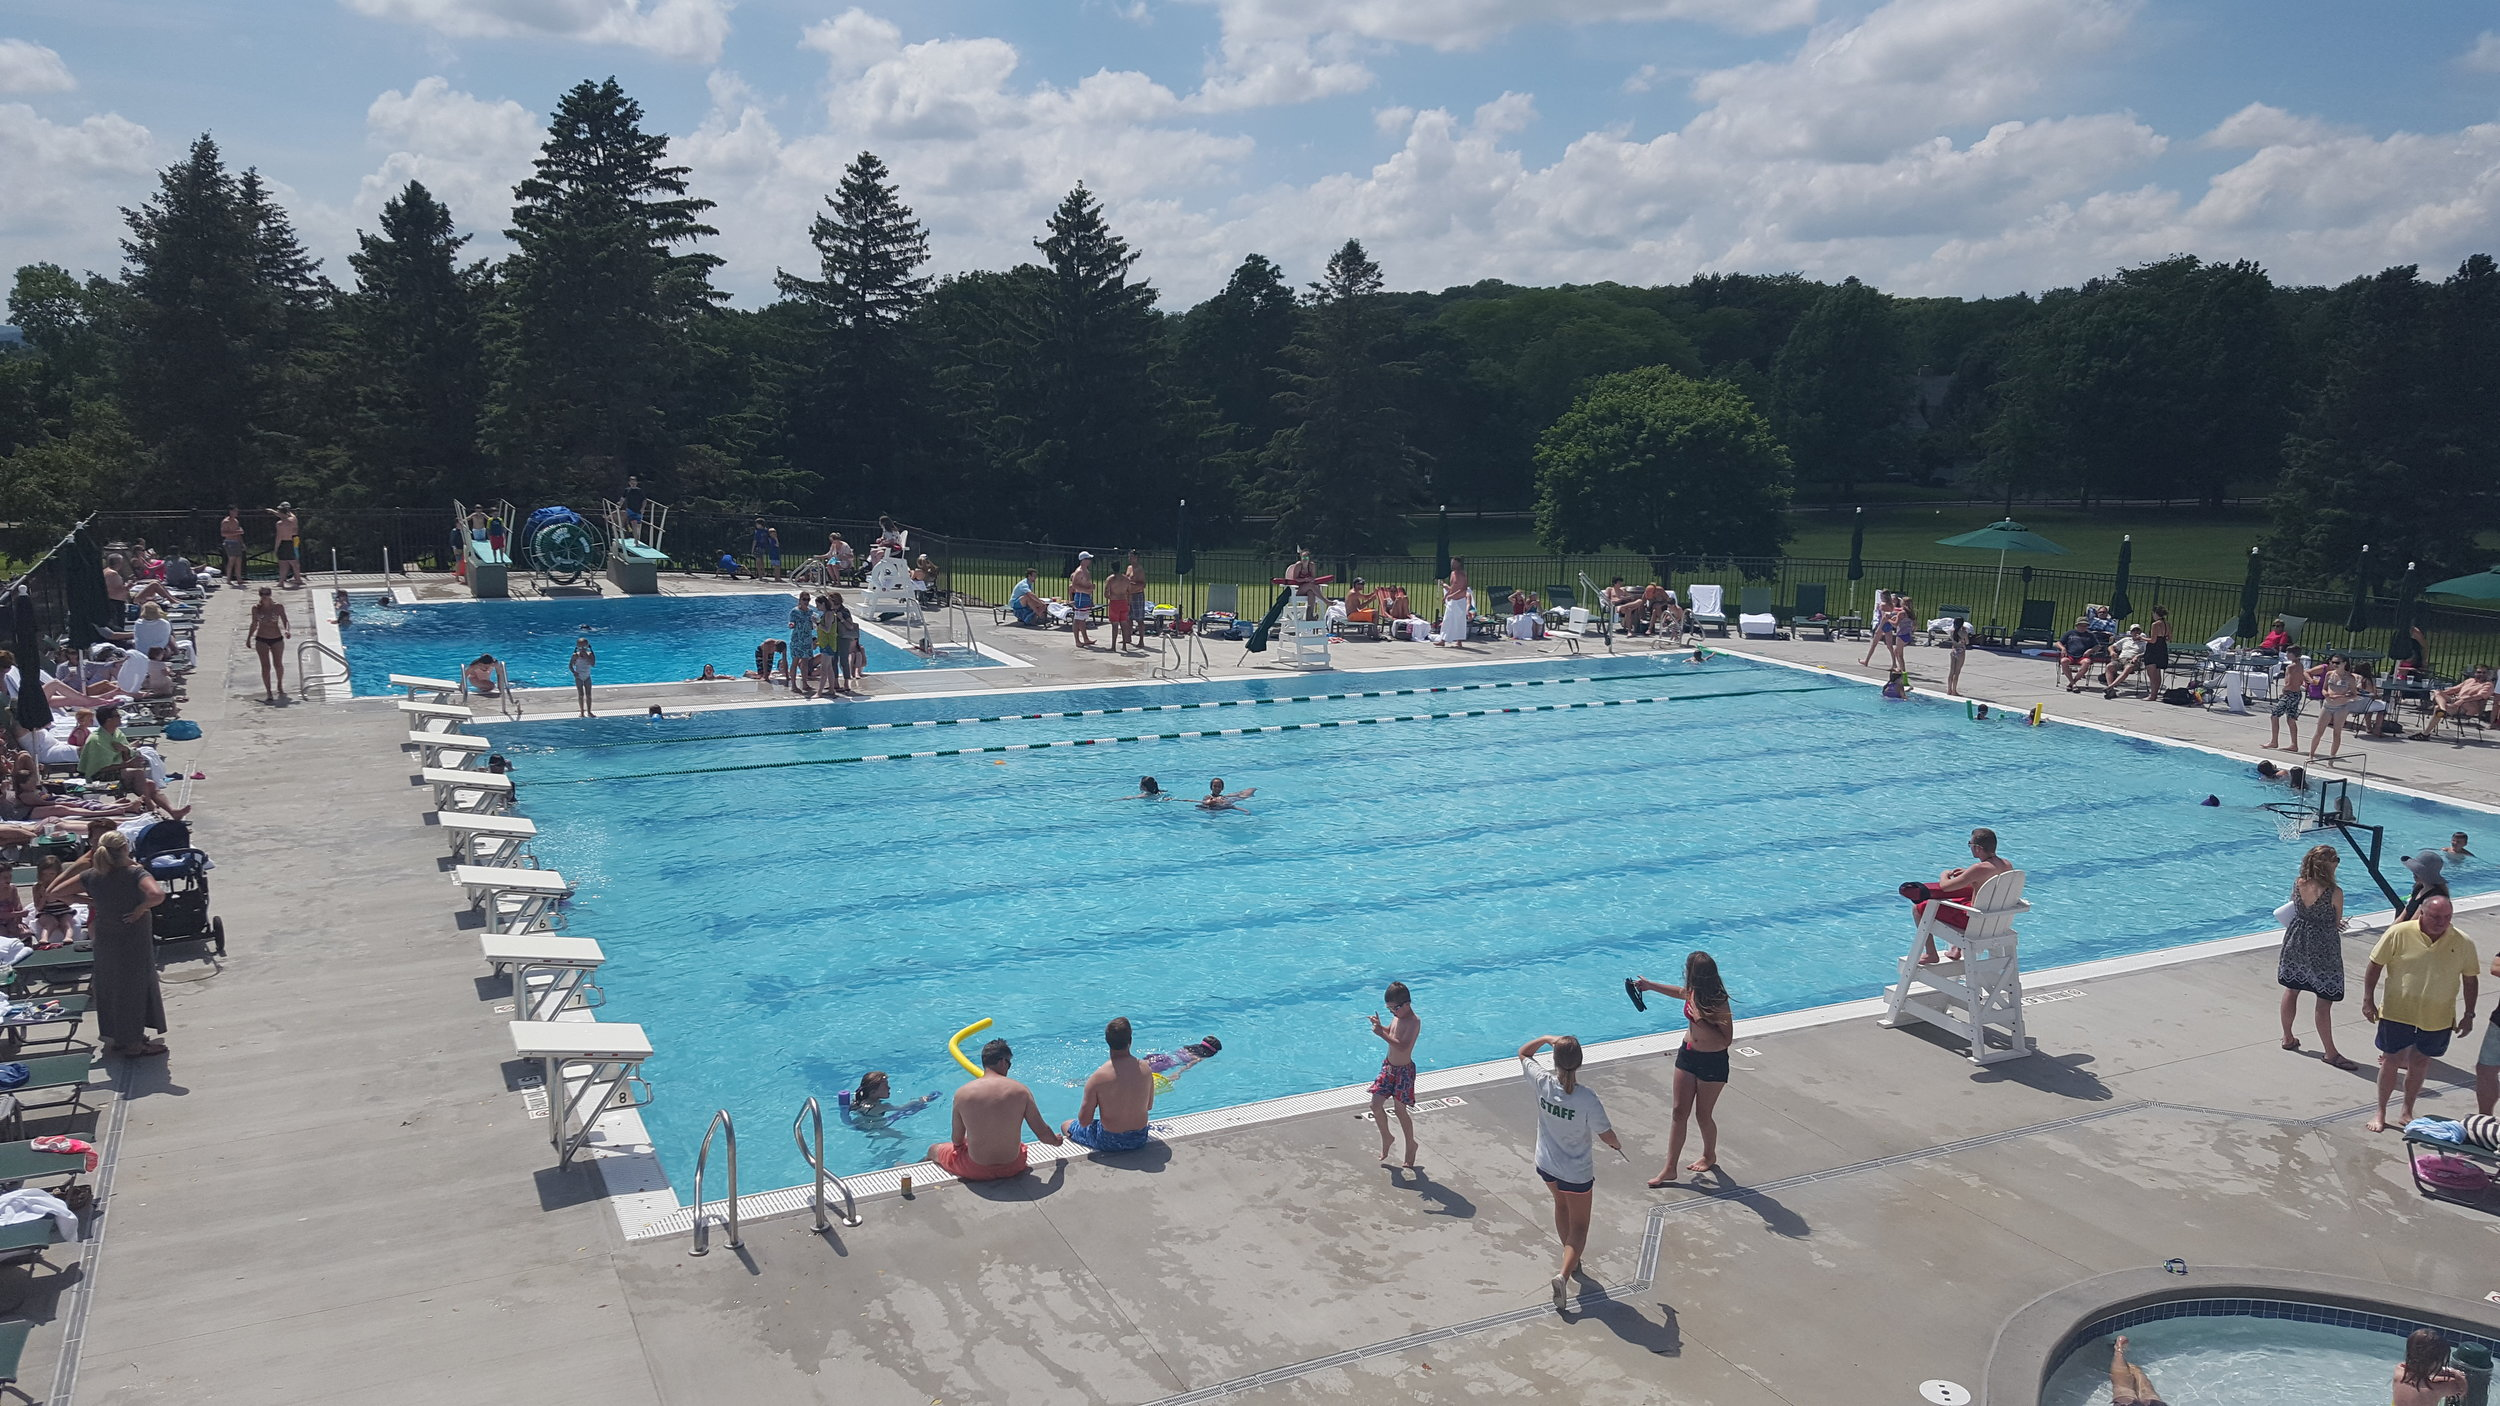 Pool area at Maple Bluff Country Club in Madison, WI